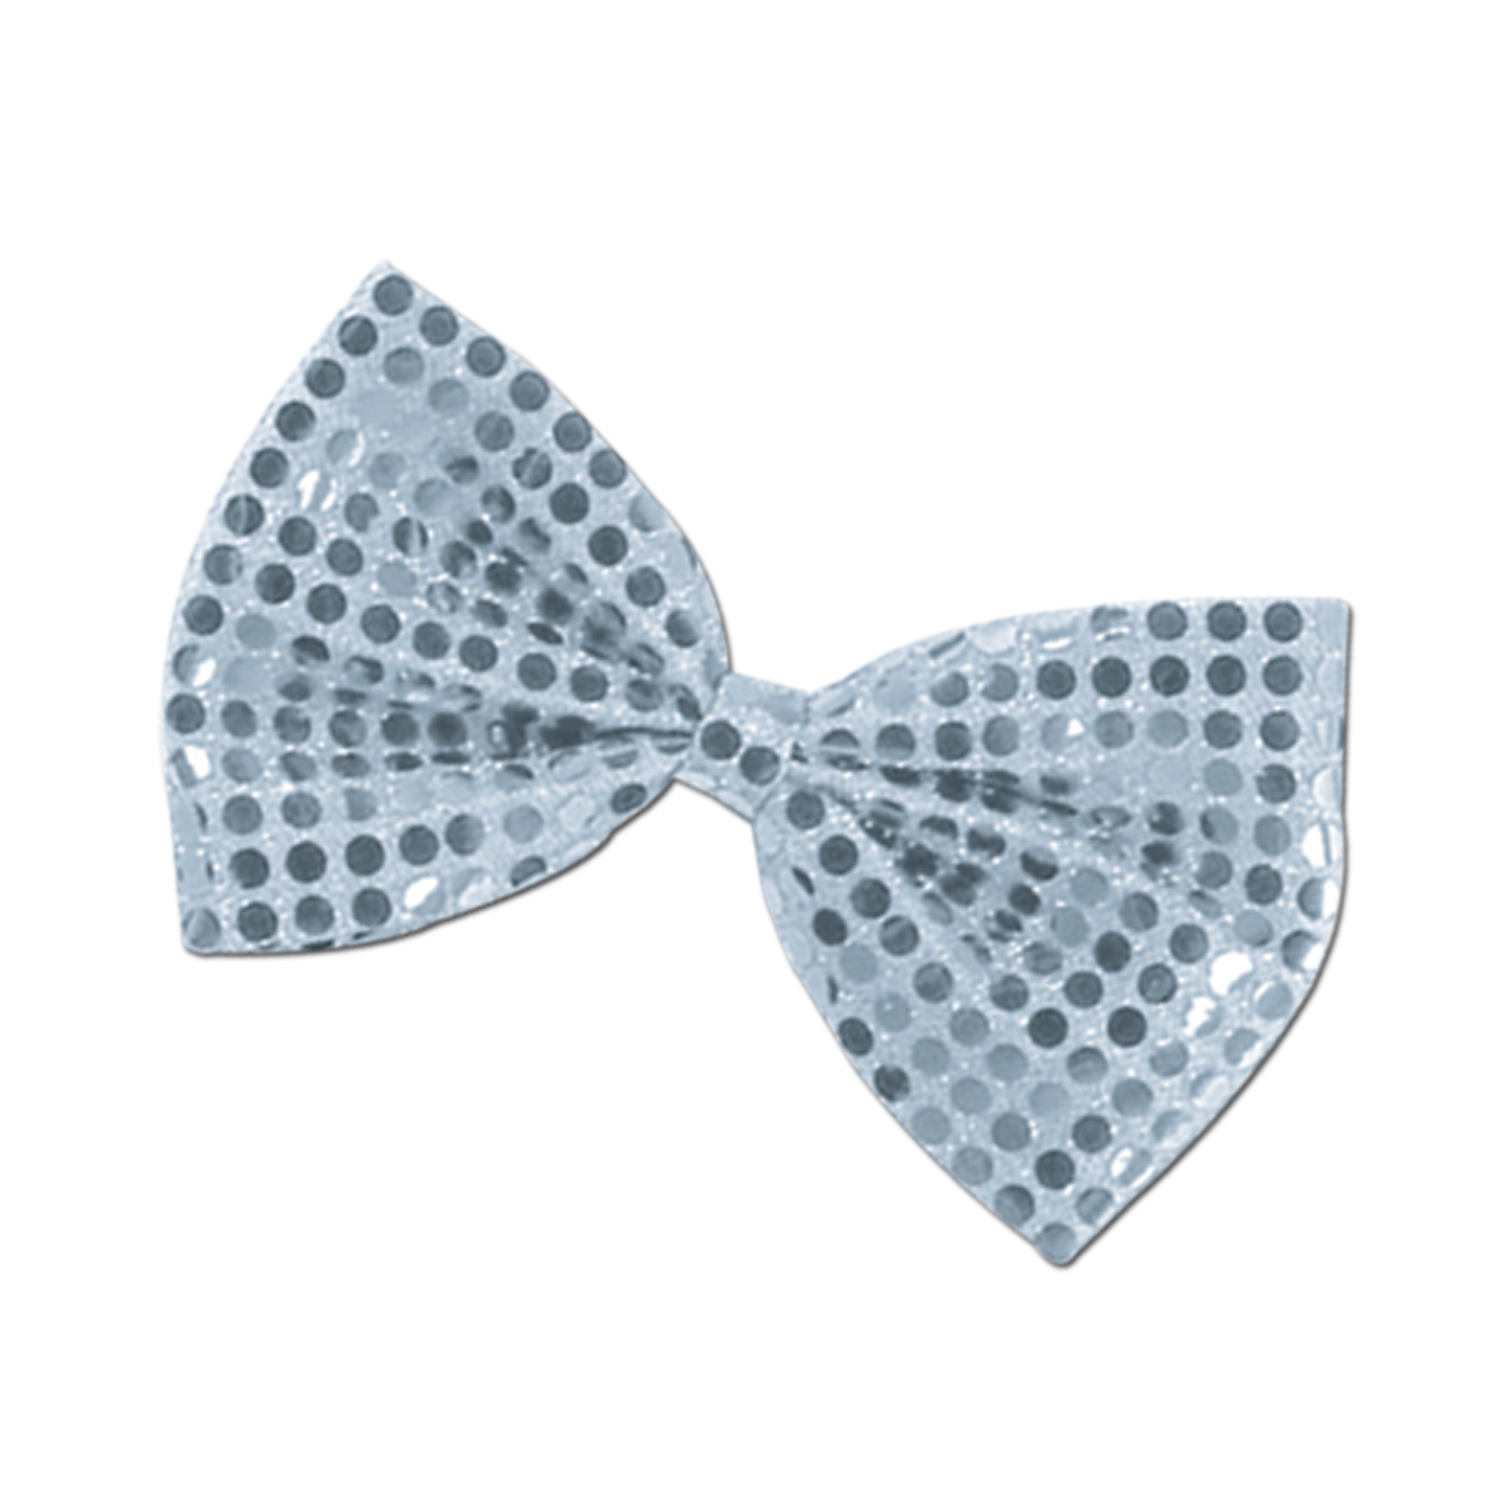 Glitz 'N Gleam Bow Tie 4.25x7in silver